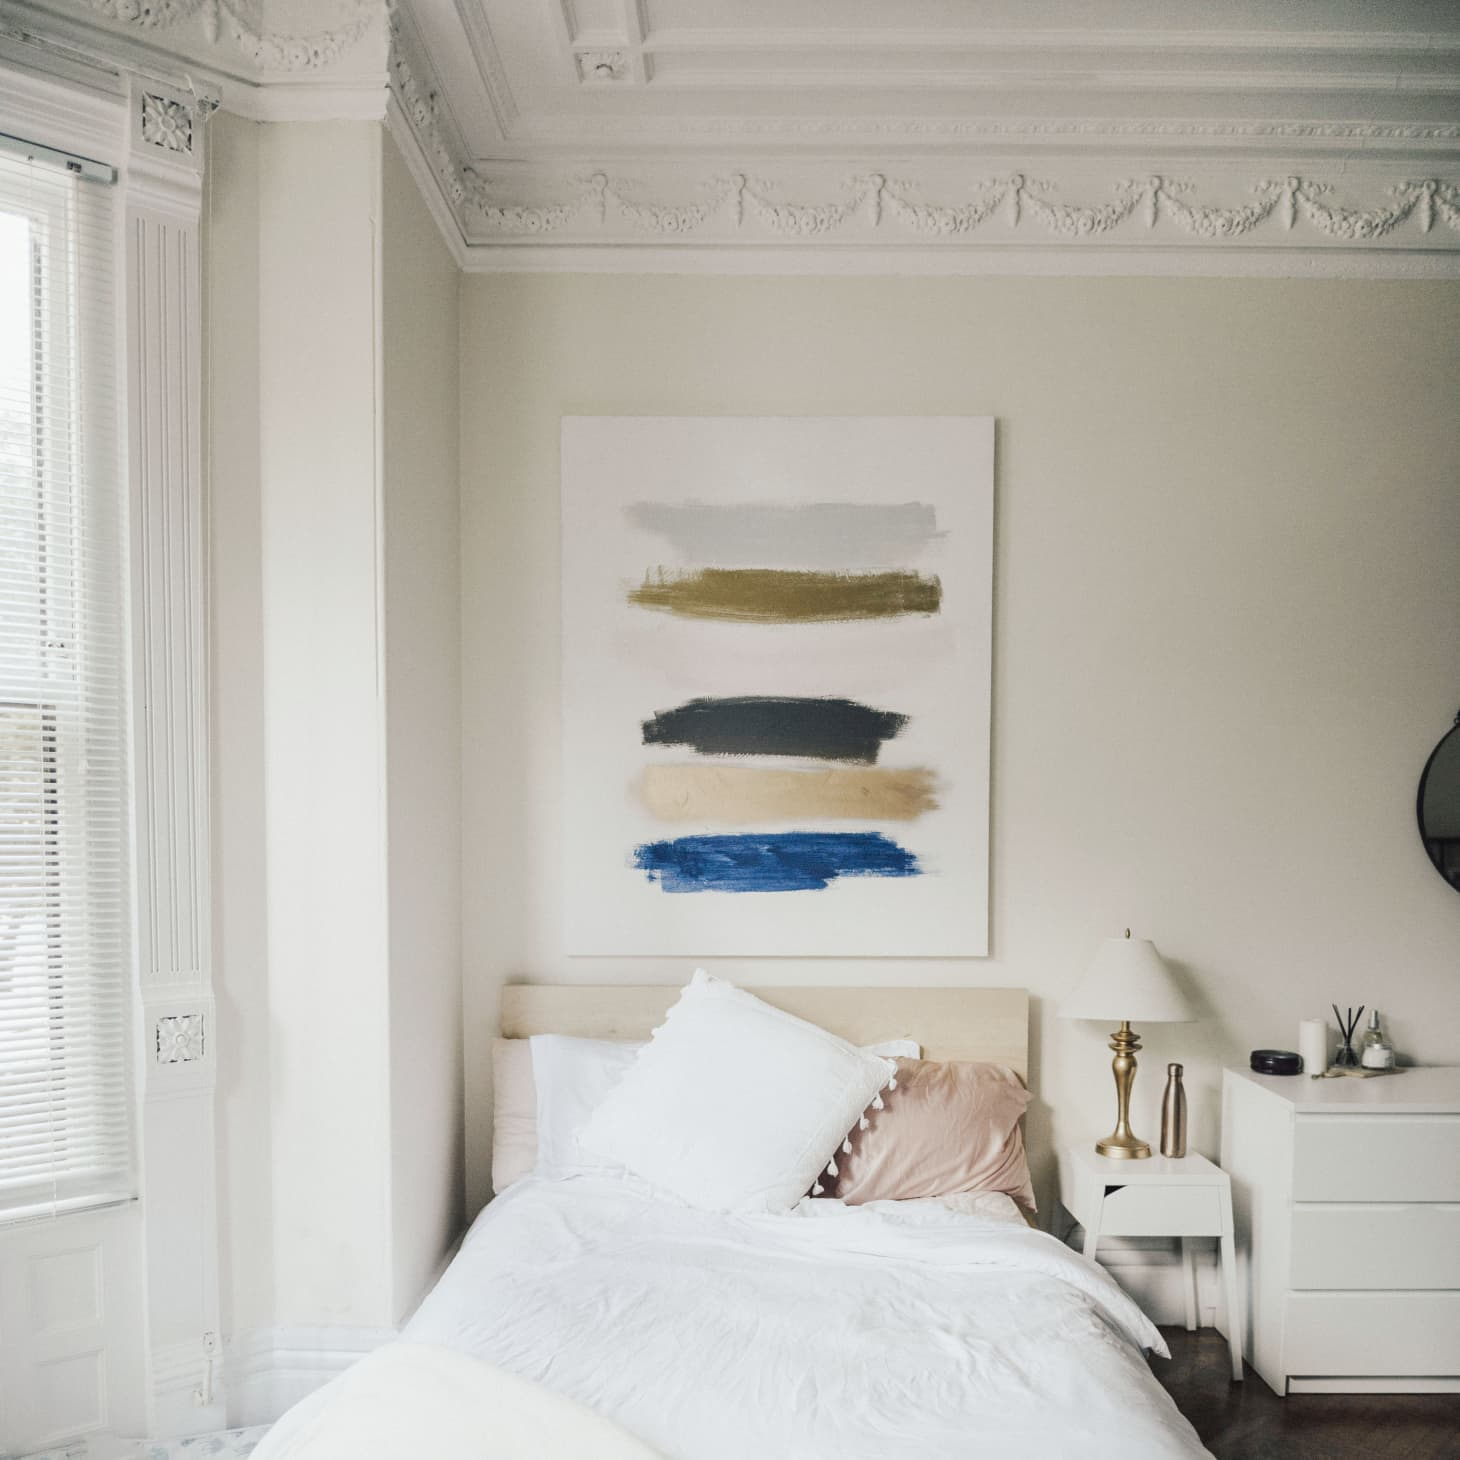 See A Boston Studio Apartment With Great Architecture